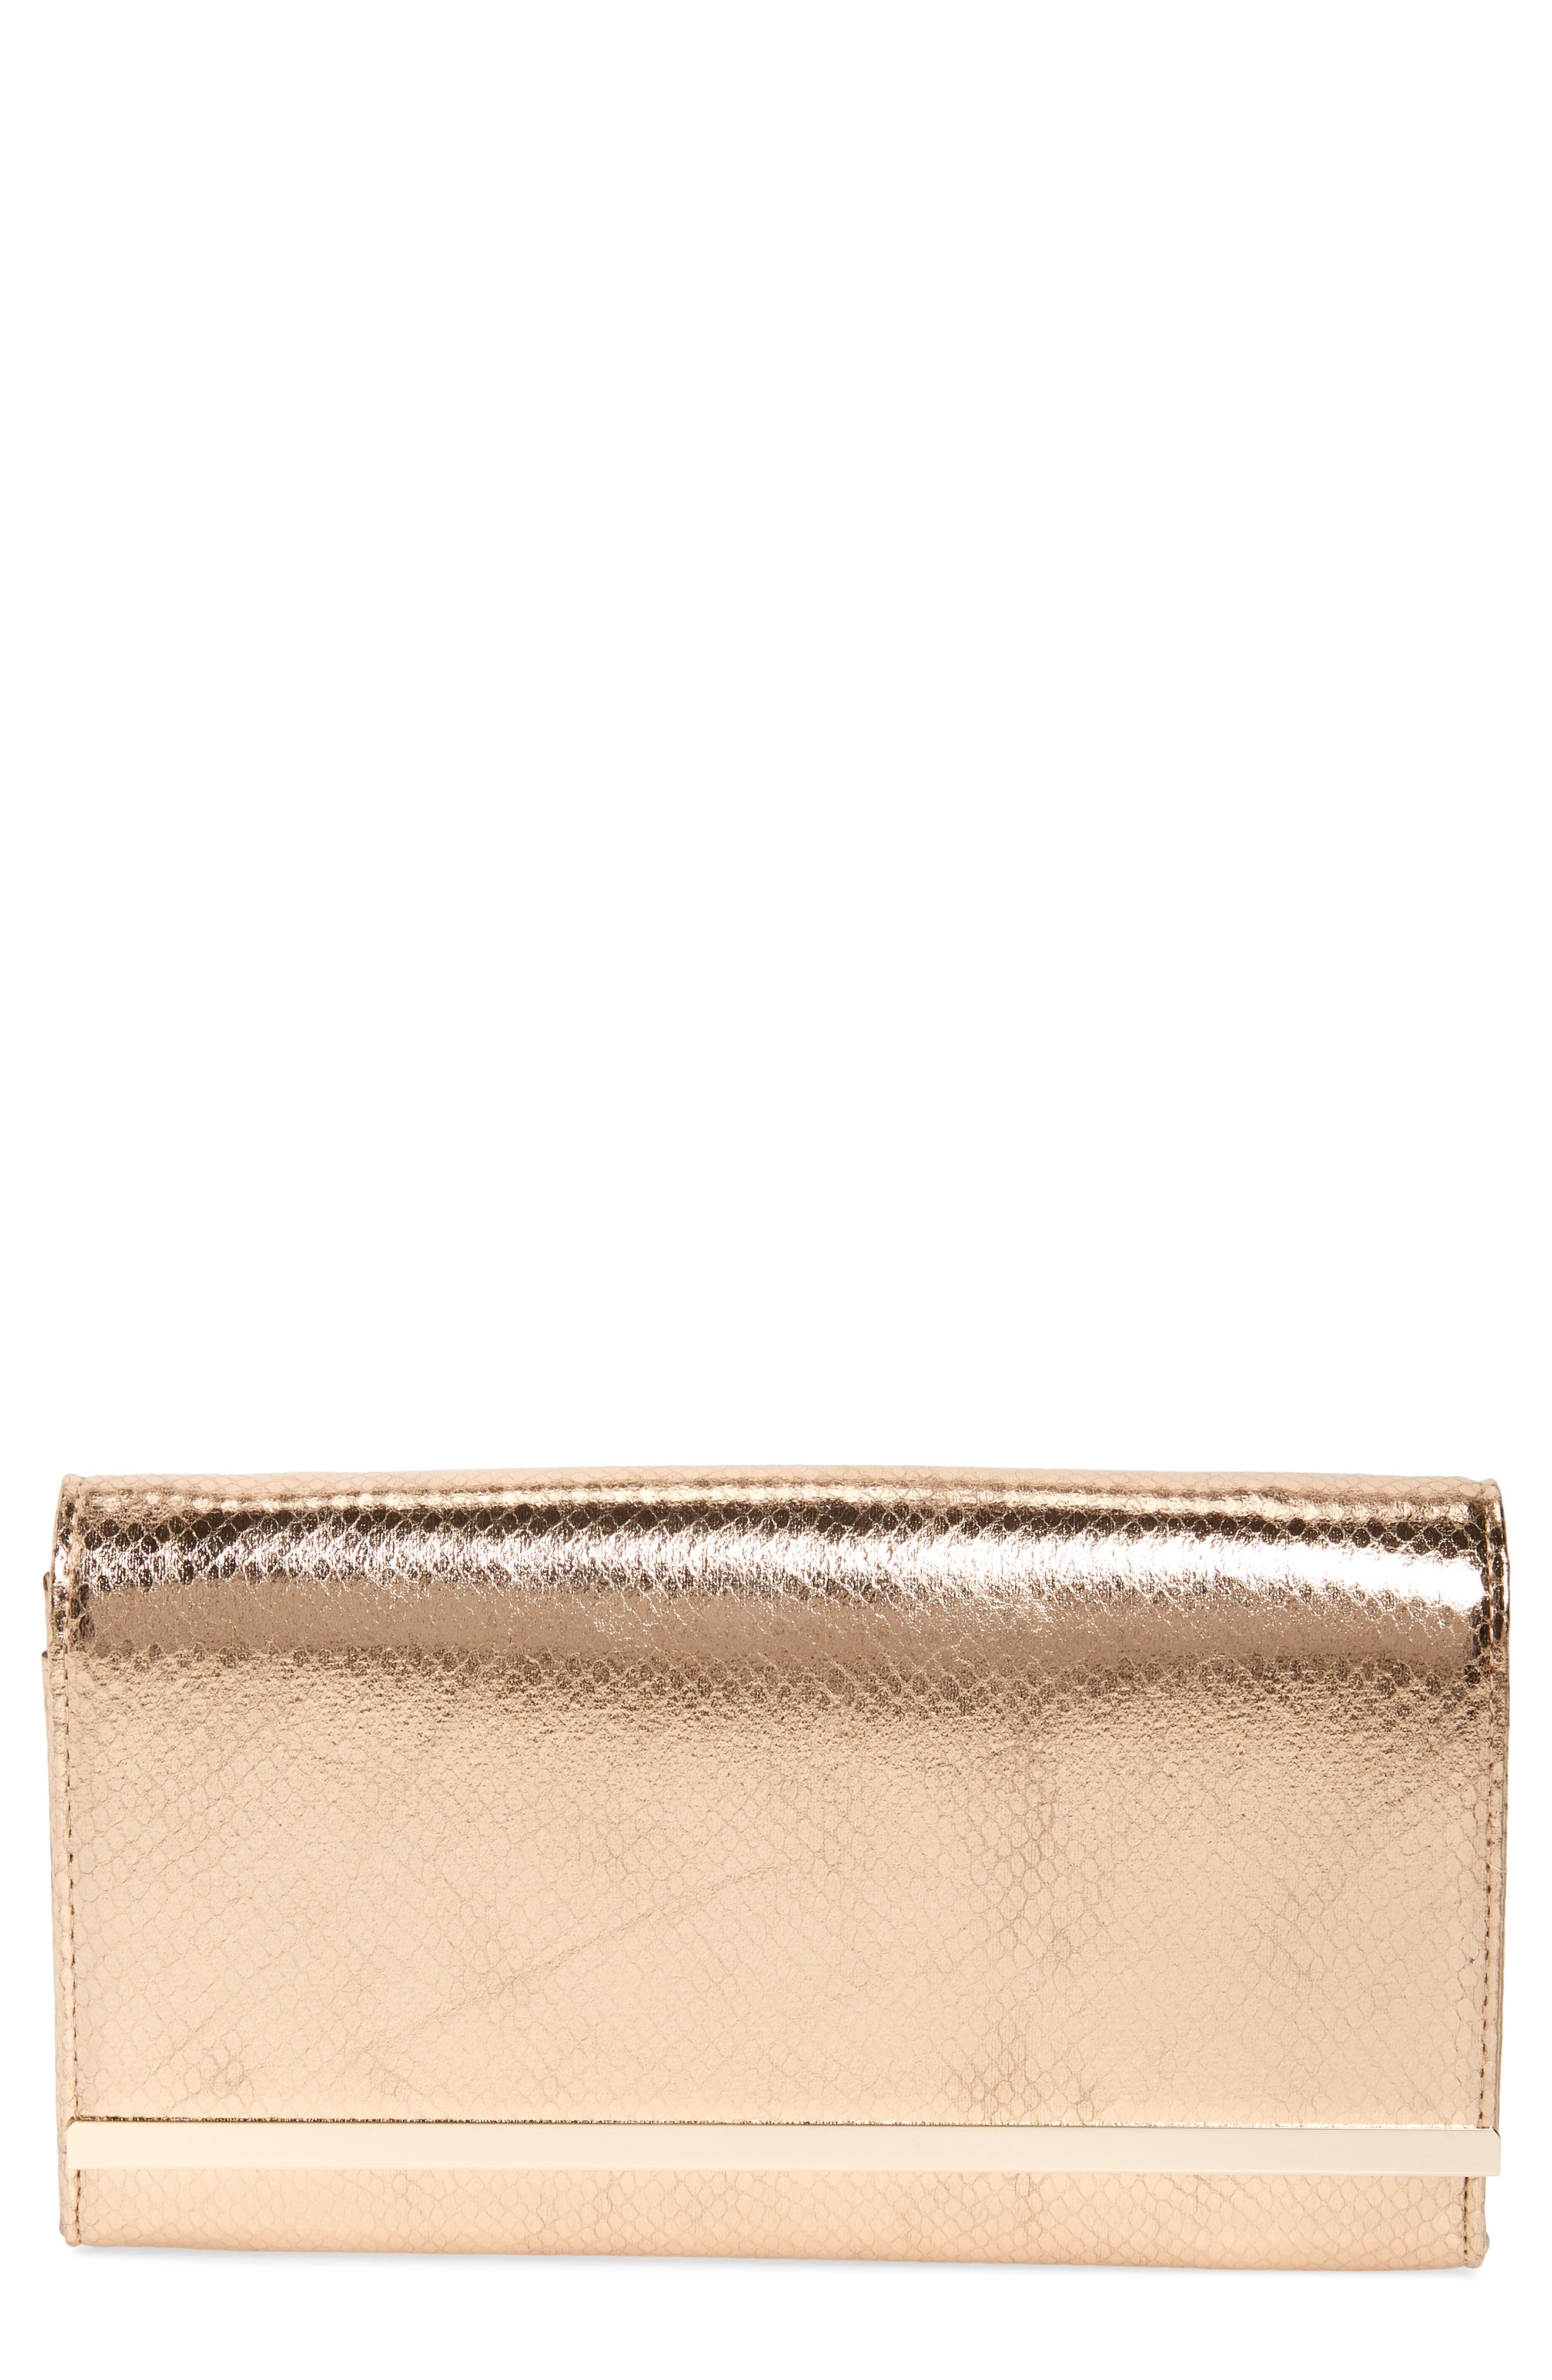 Metallic Snake-Embossed Faux Leather Bar Clutch,                             Main thumbnail 1, color,                             ROSE GOLD